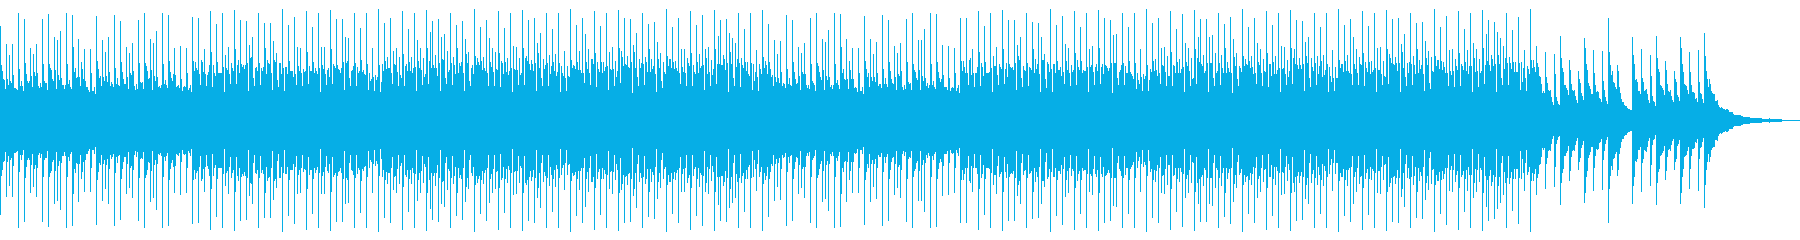 No synth ver strings synth's reproduced waveform